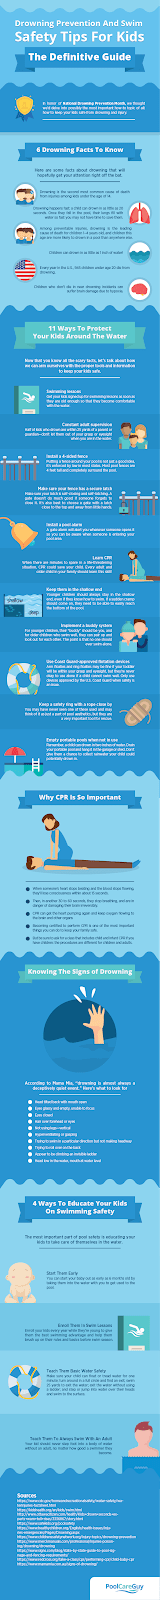 definitive pool safety infographic - drowning injury attorney The Hartman Law Firm, LLC in Charleston, South Carolina